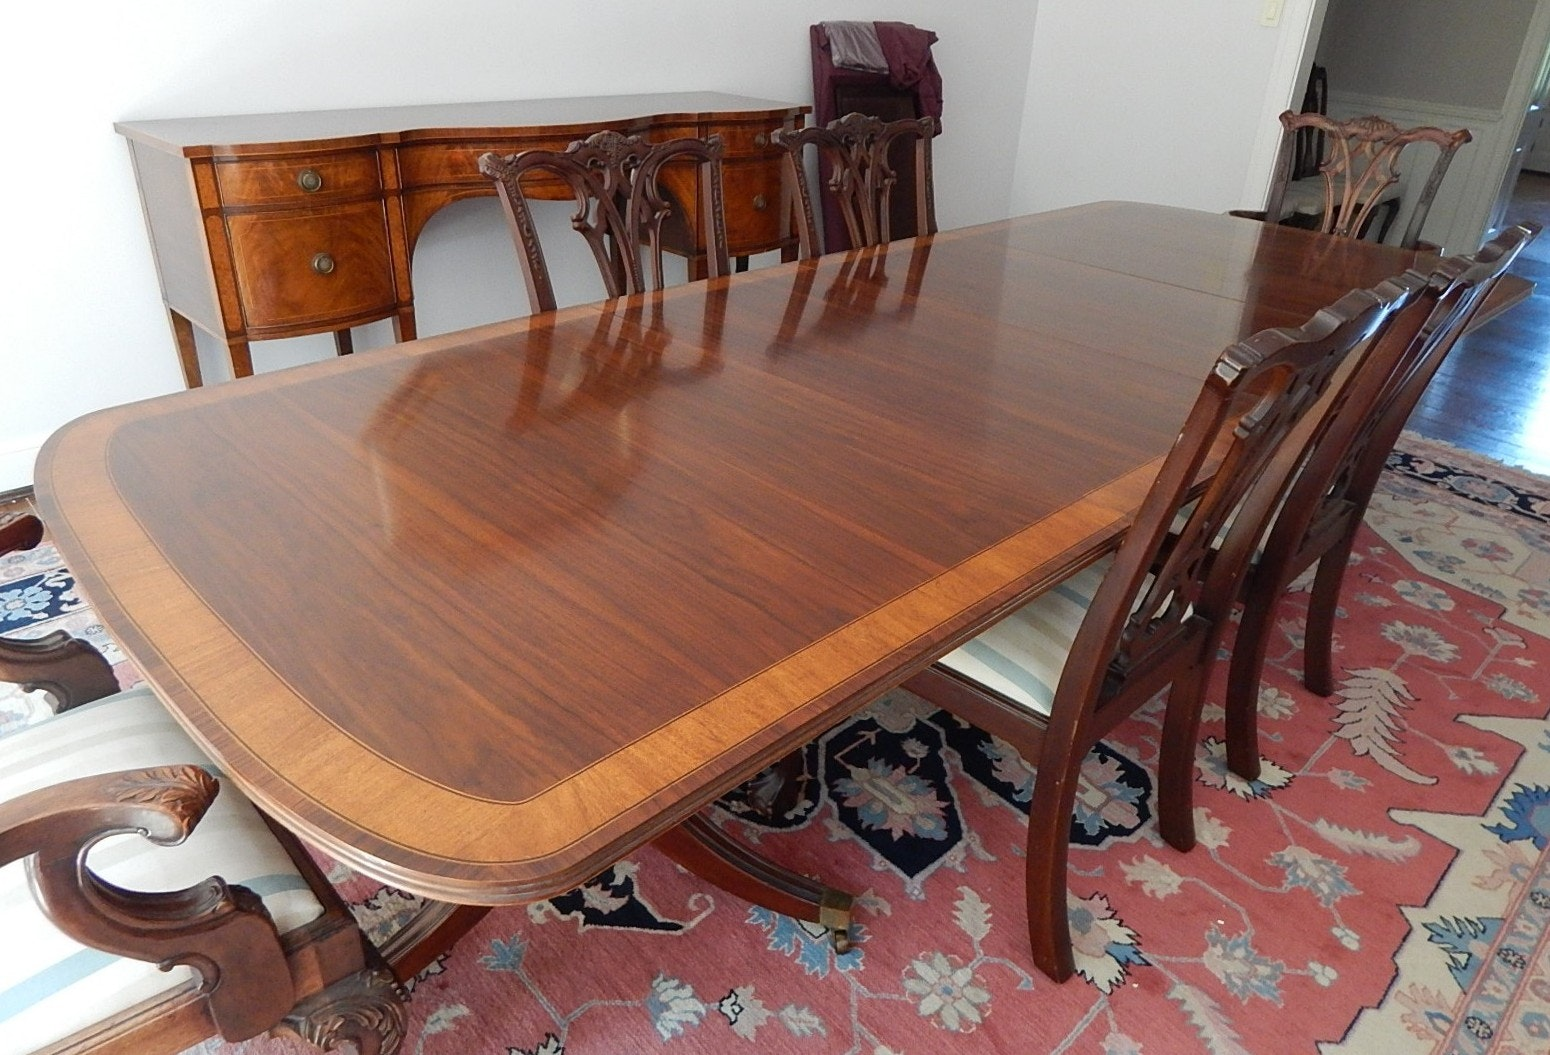 Mahogany Dining Table and Six Chairs by White Furniture Co  : DSCN2360JPGixlibrb 11 from www.ebth.com size 1400 x 953 jpeg 260kB